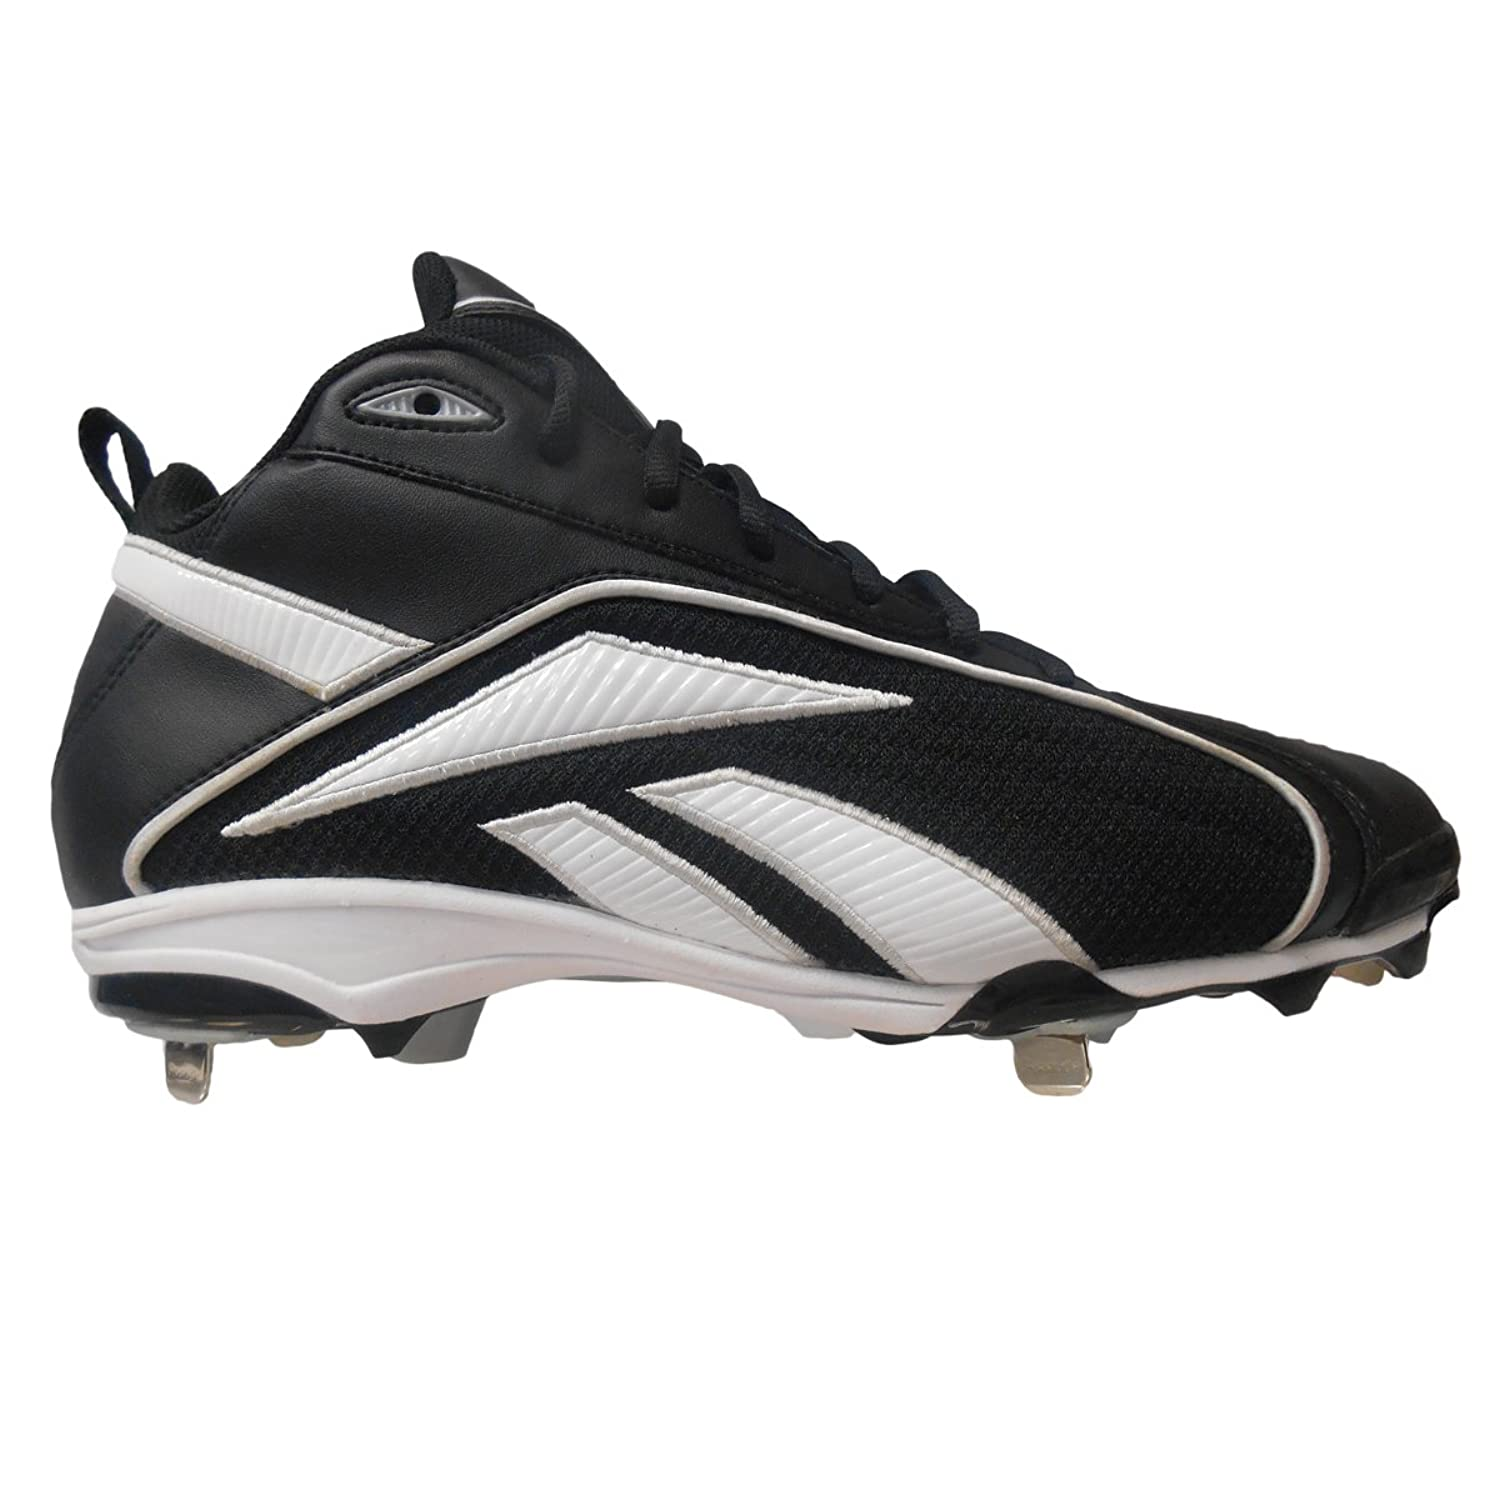 Reebok Vero FL Mid II Men's Baseball Cleats (7, Black/White)